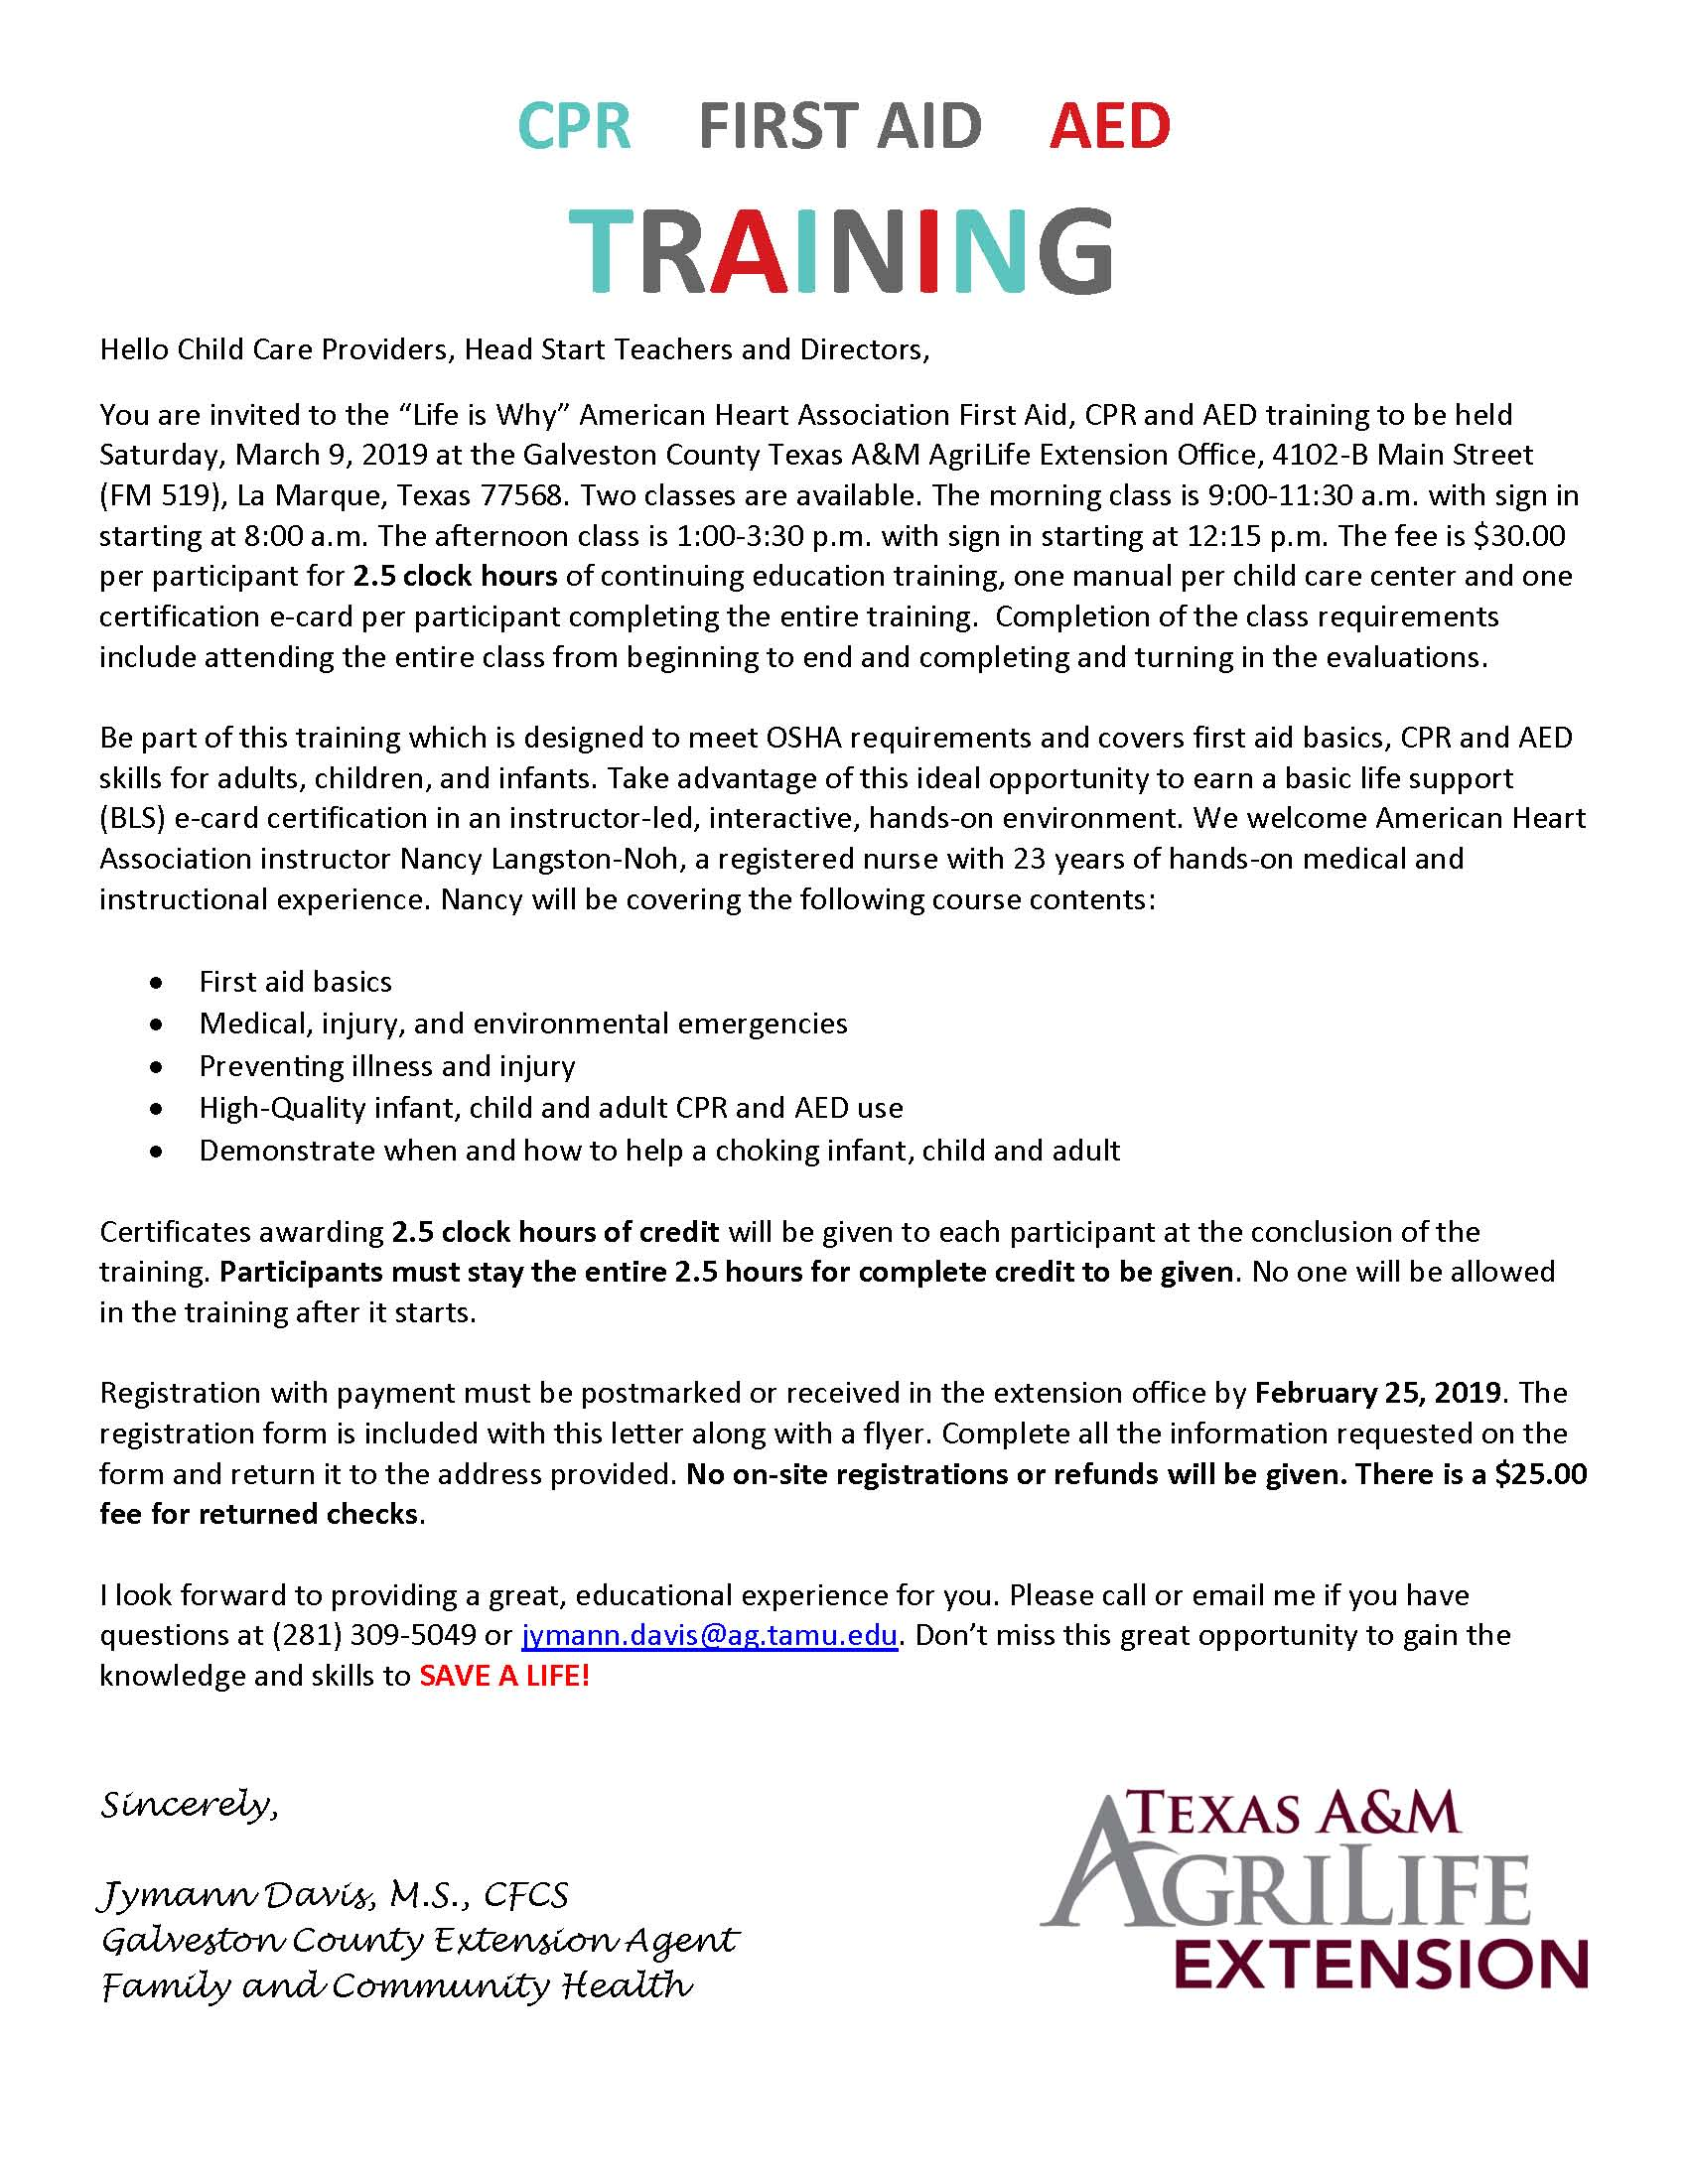 CPR-FIRST AID-AED TRAINING